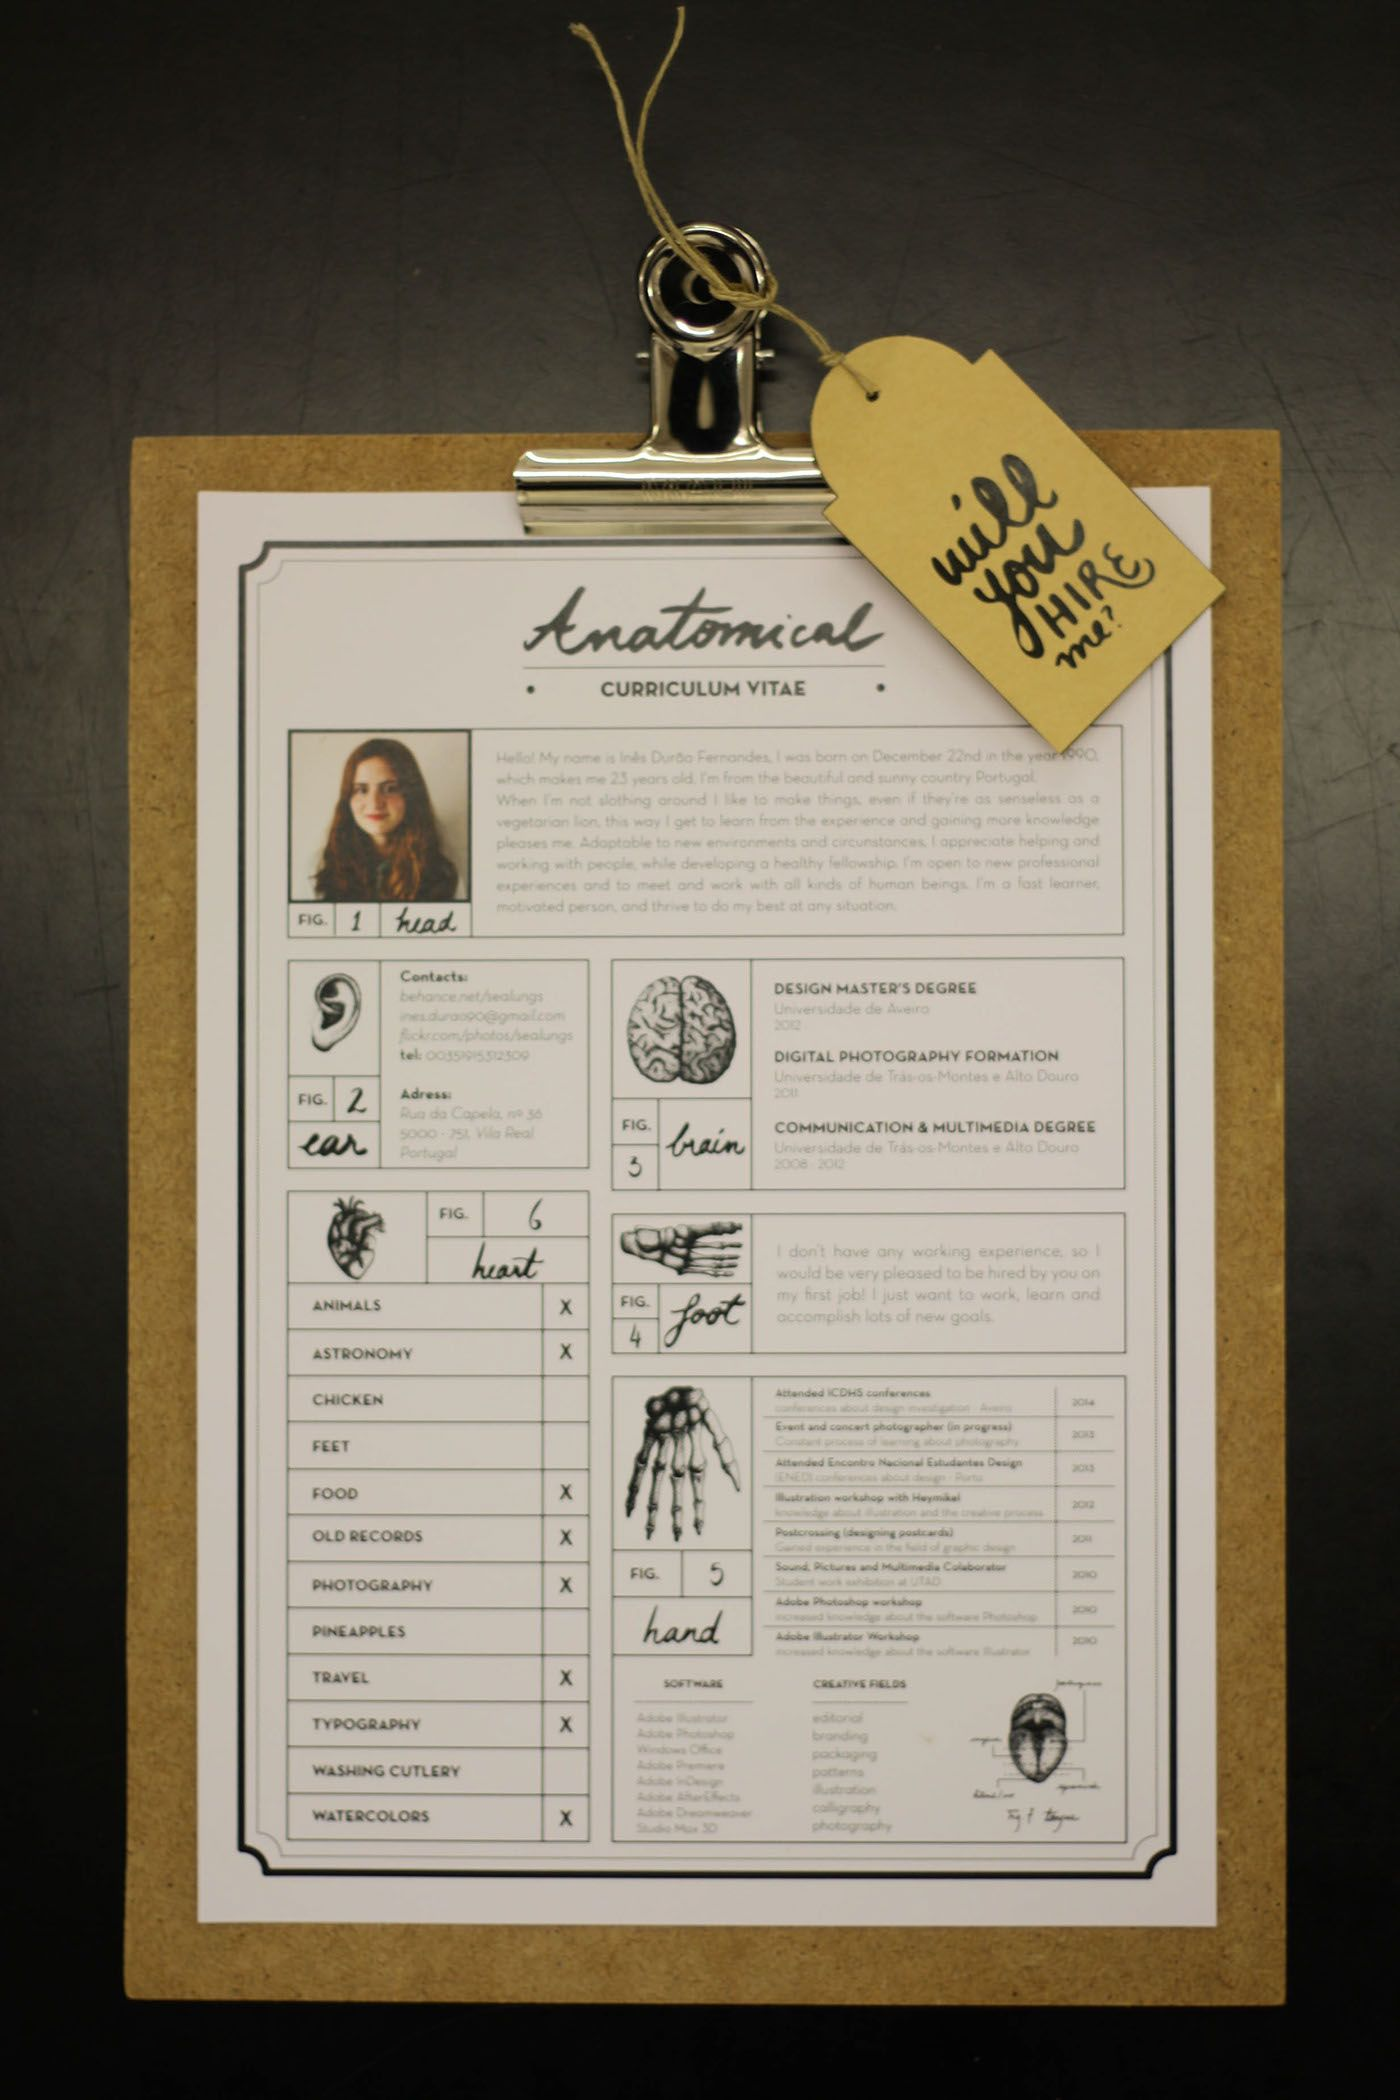 Anatomical Curriculum Vitae on Behance | Graphic Design | Pinterest ...